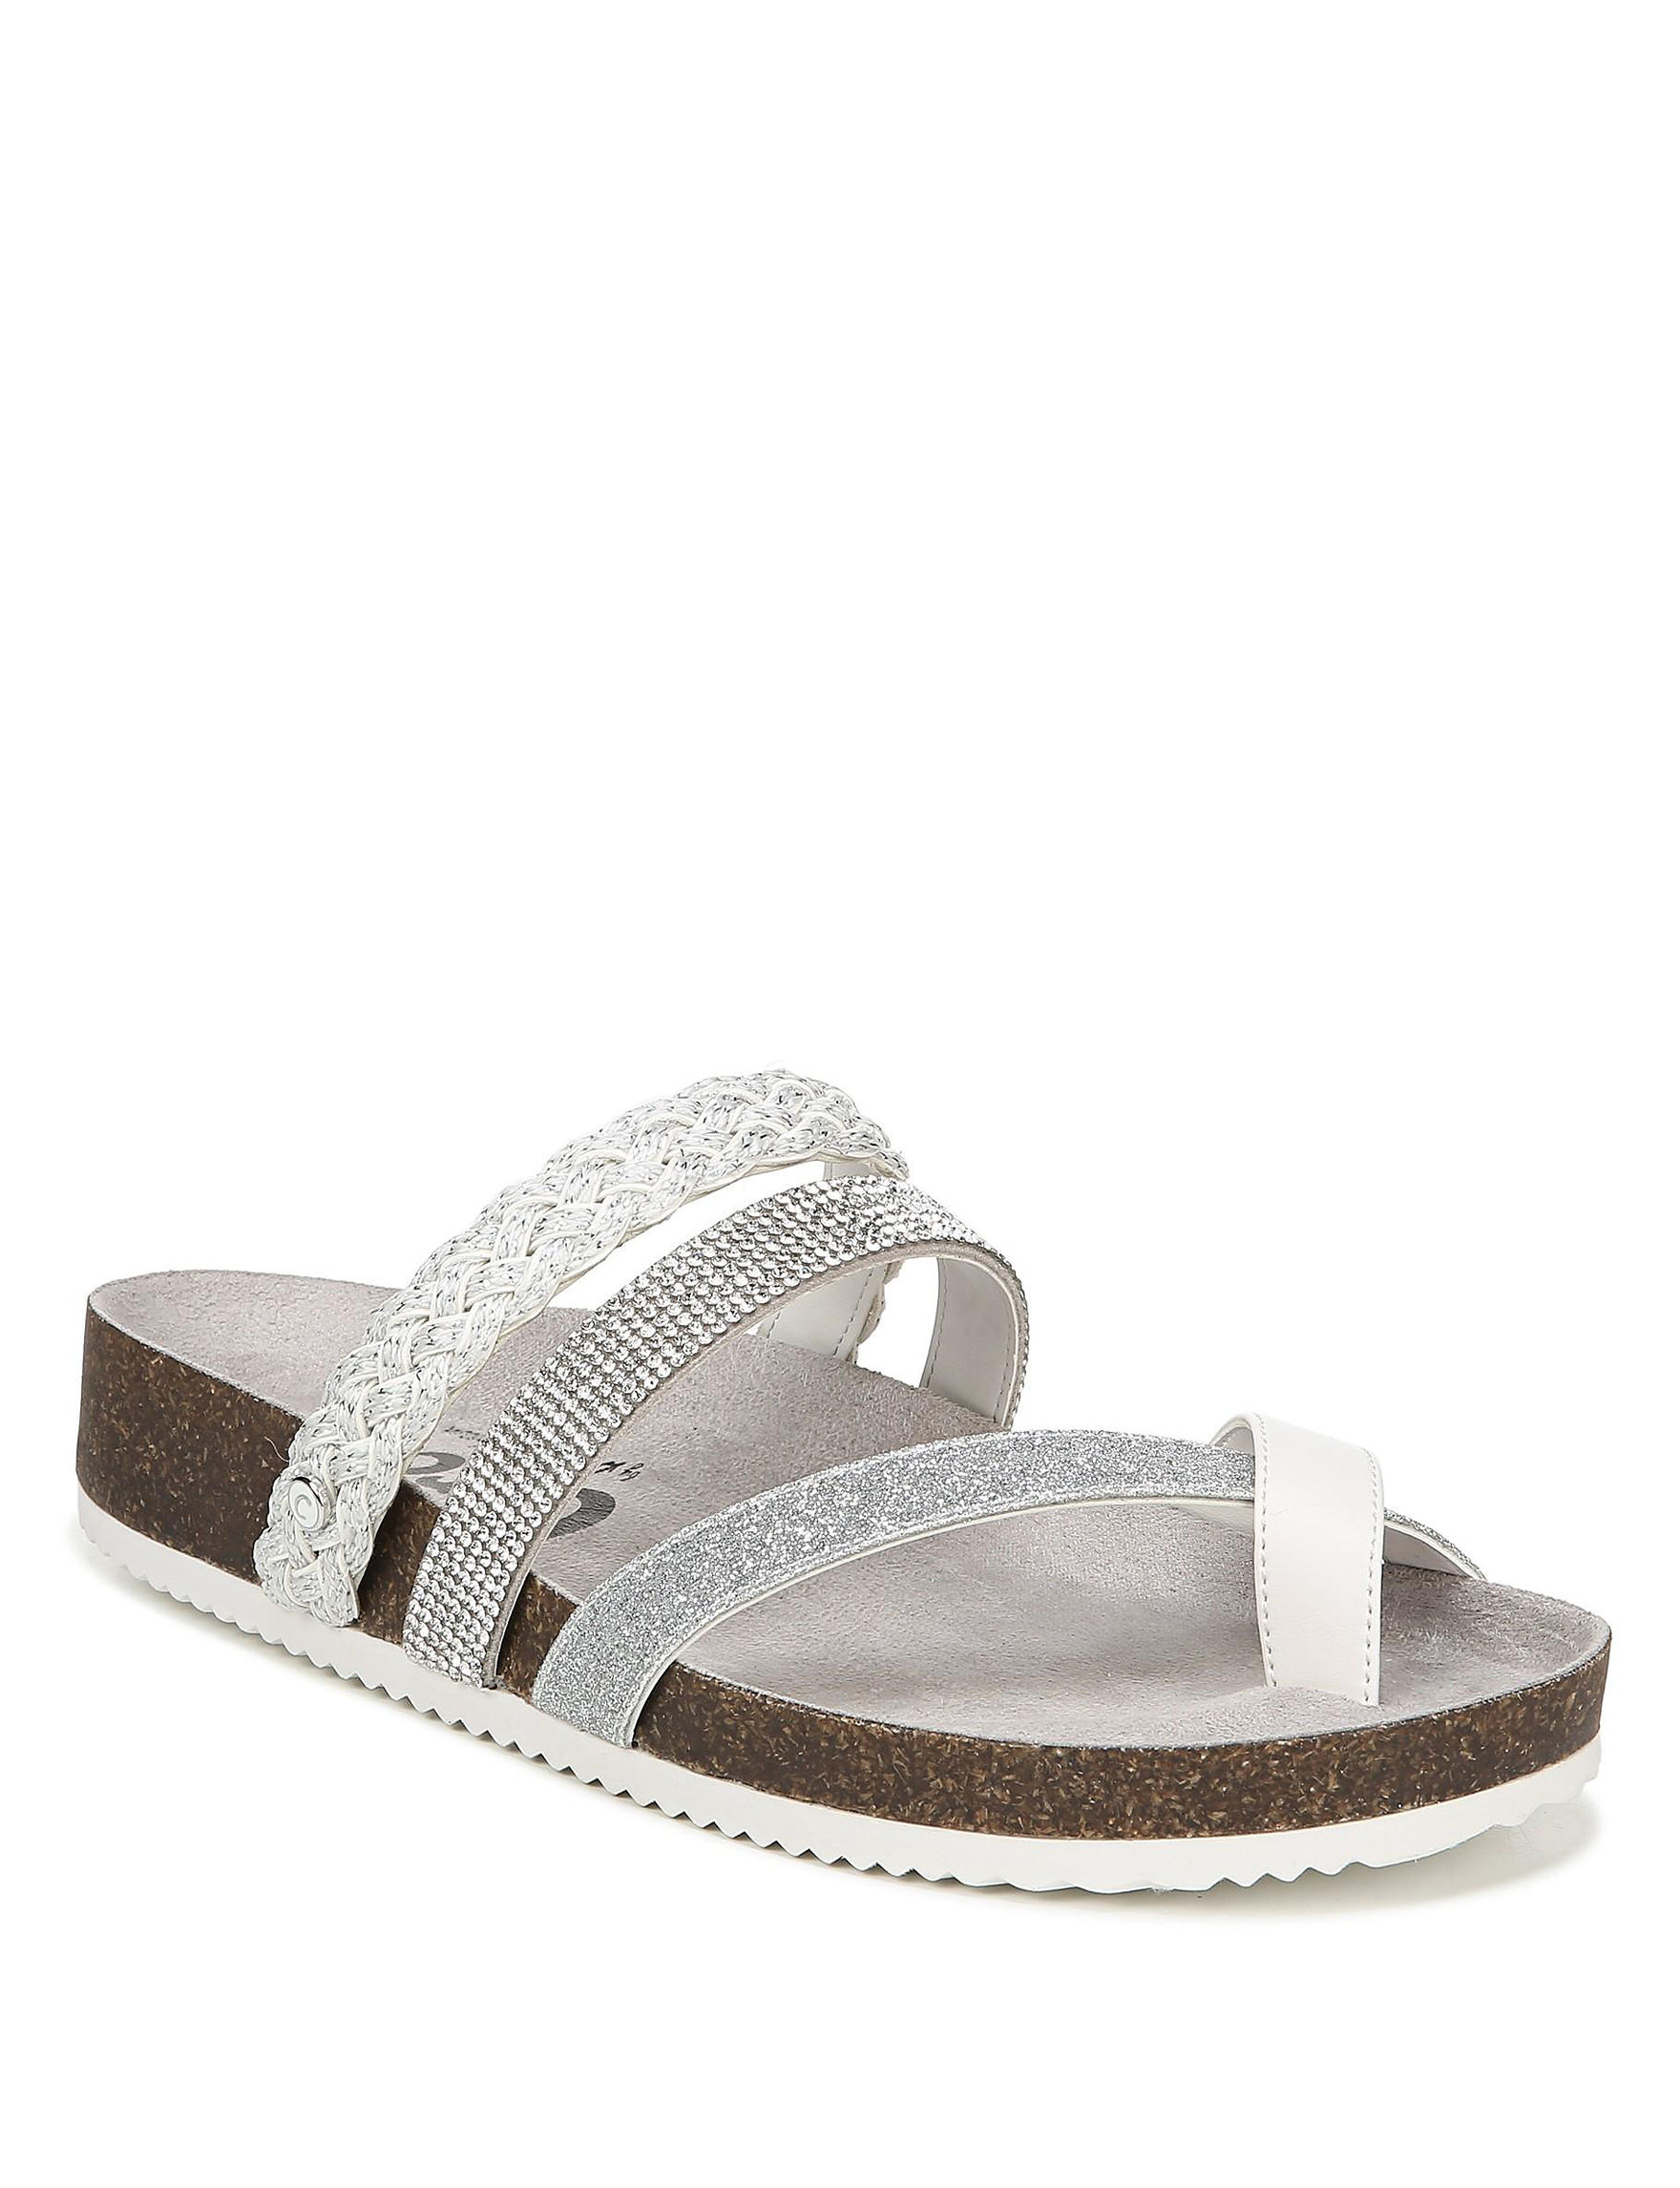 Circus By Sam Edelman White / Silver Flat Sandals Footbed